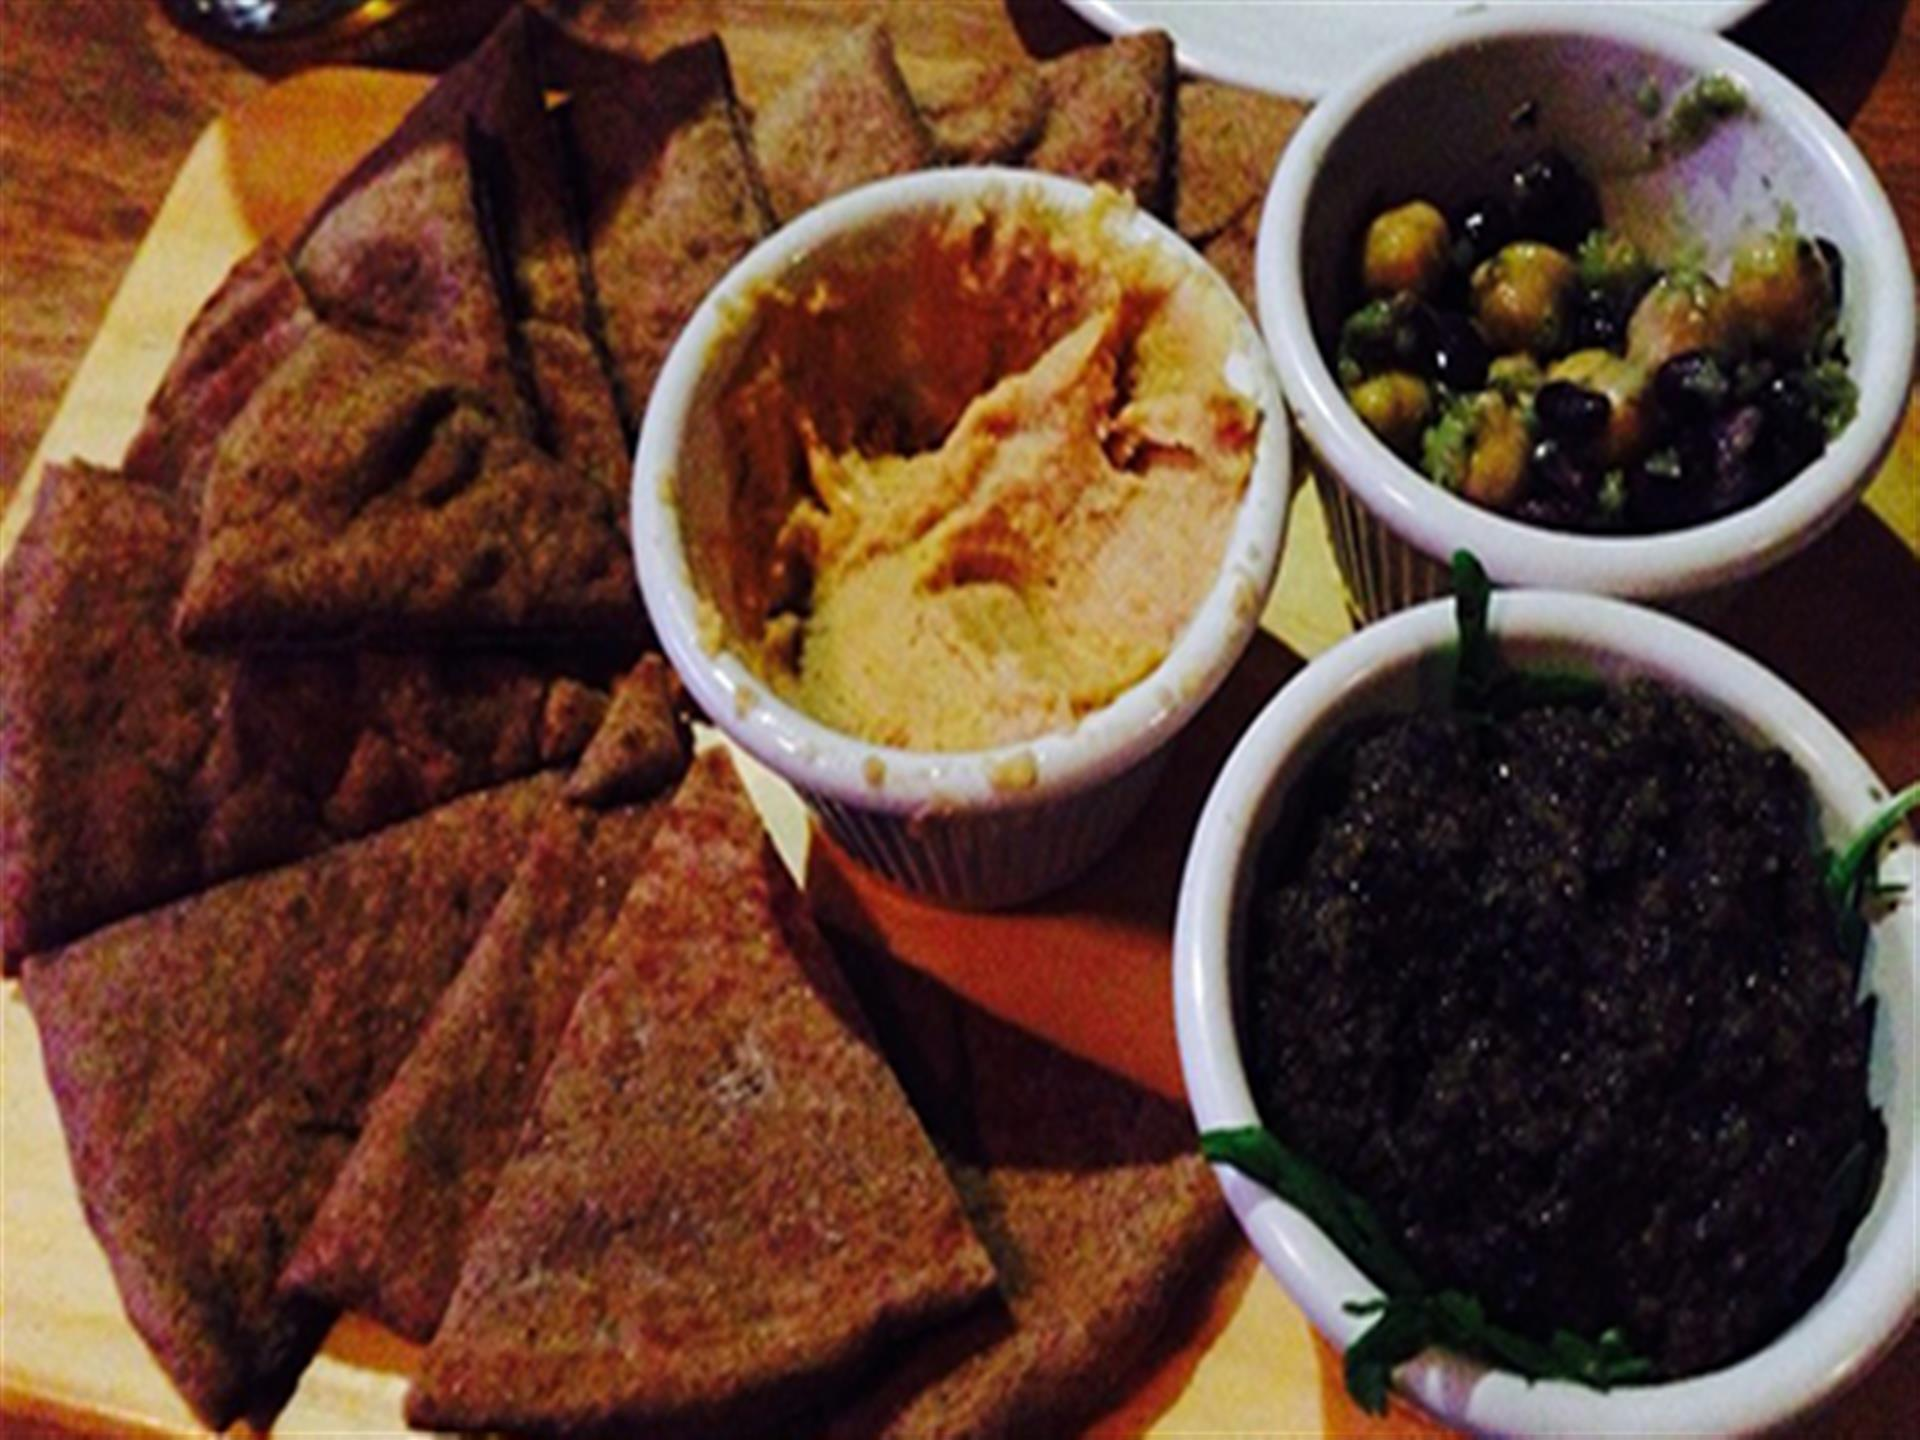 PIta chips and assorted dips